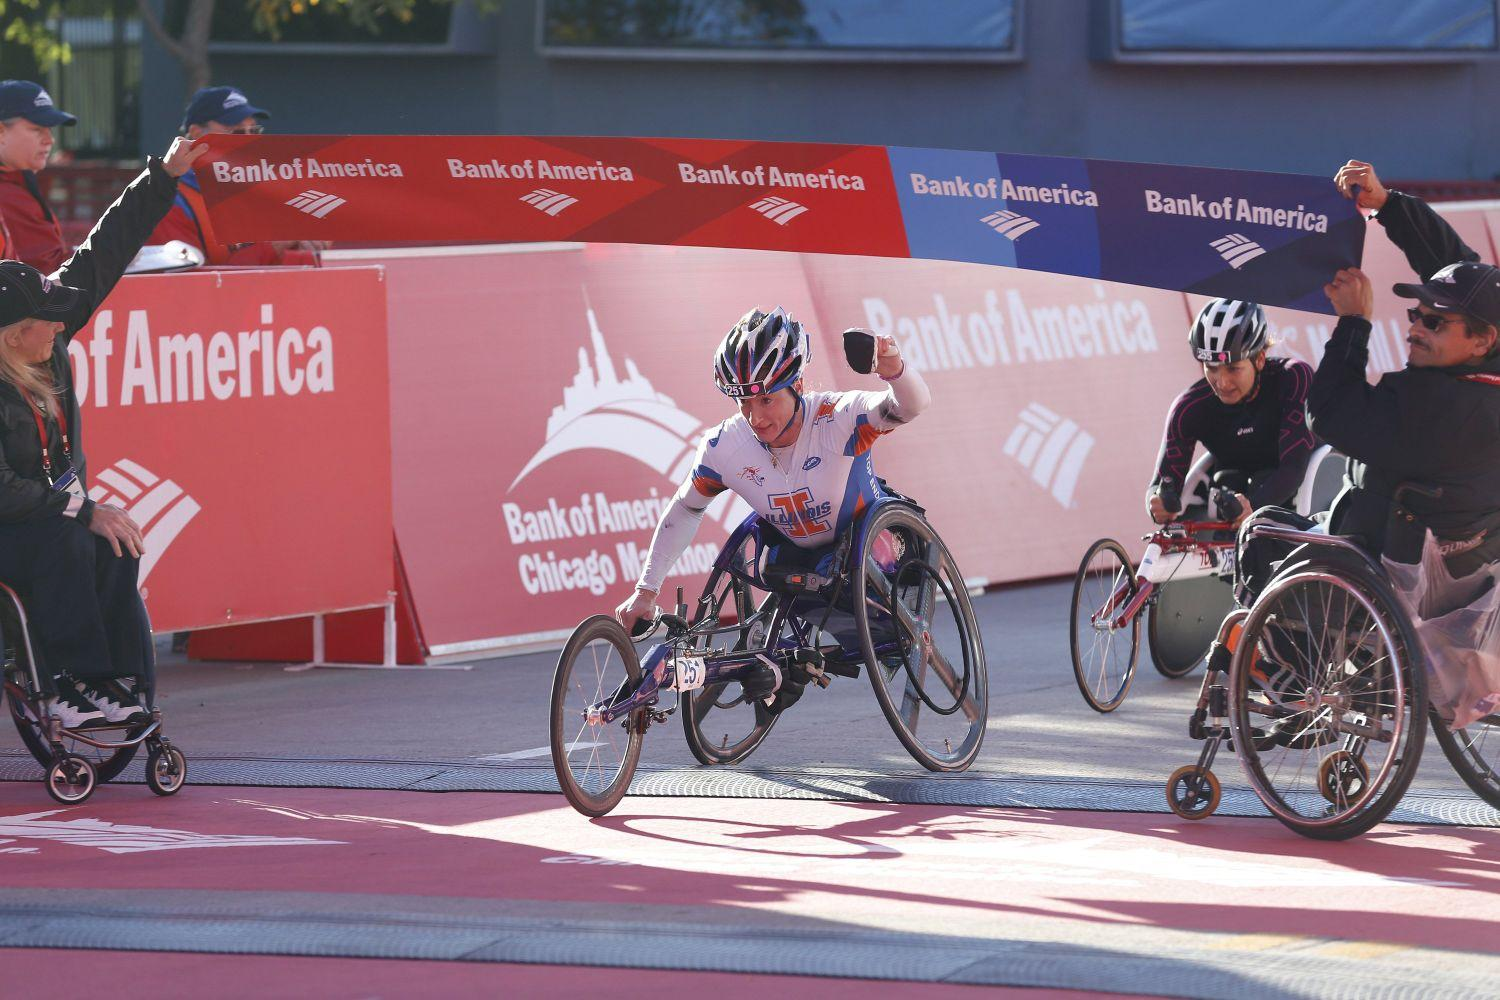 Tatyana McFadden, of Champaign, Illinois, wins the women's wheelchair division of the Bank of America Chicago Marathon on October 13, 2013.